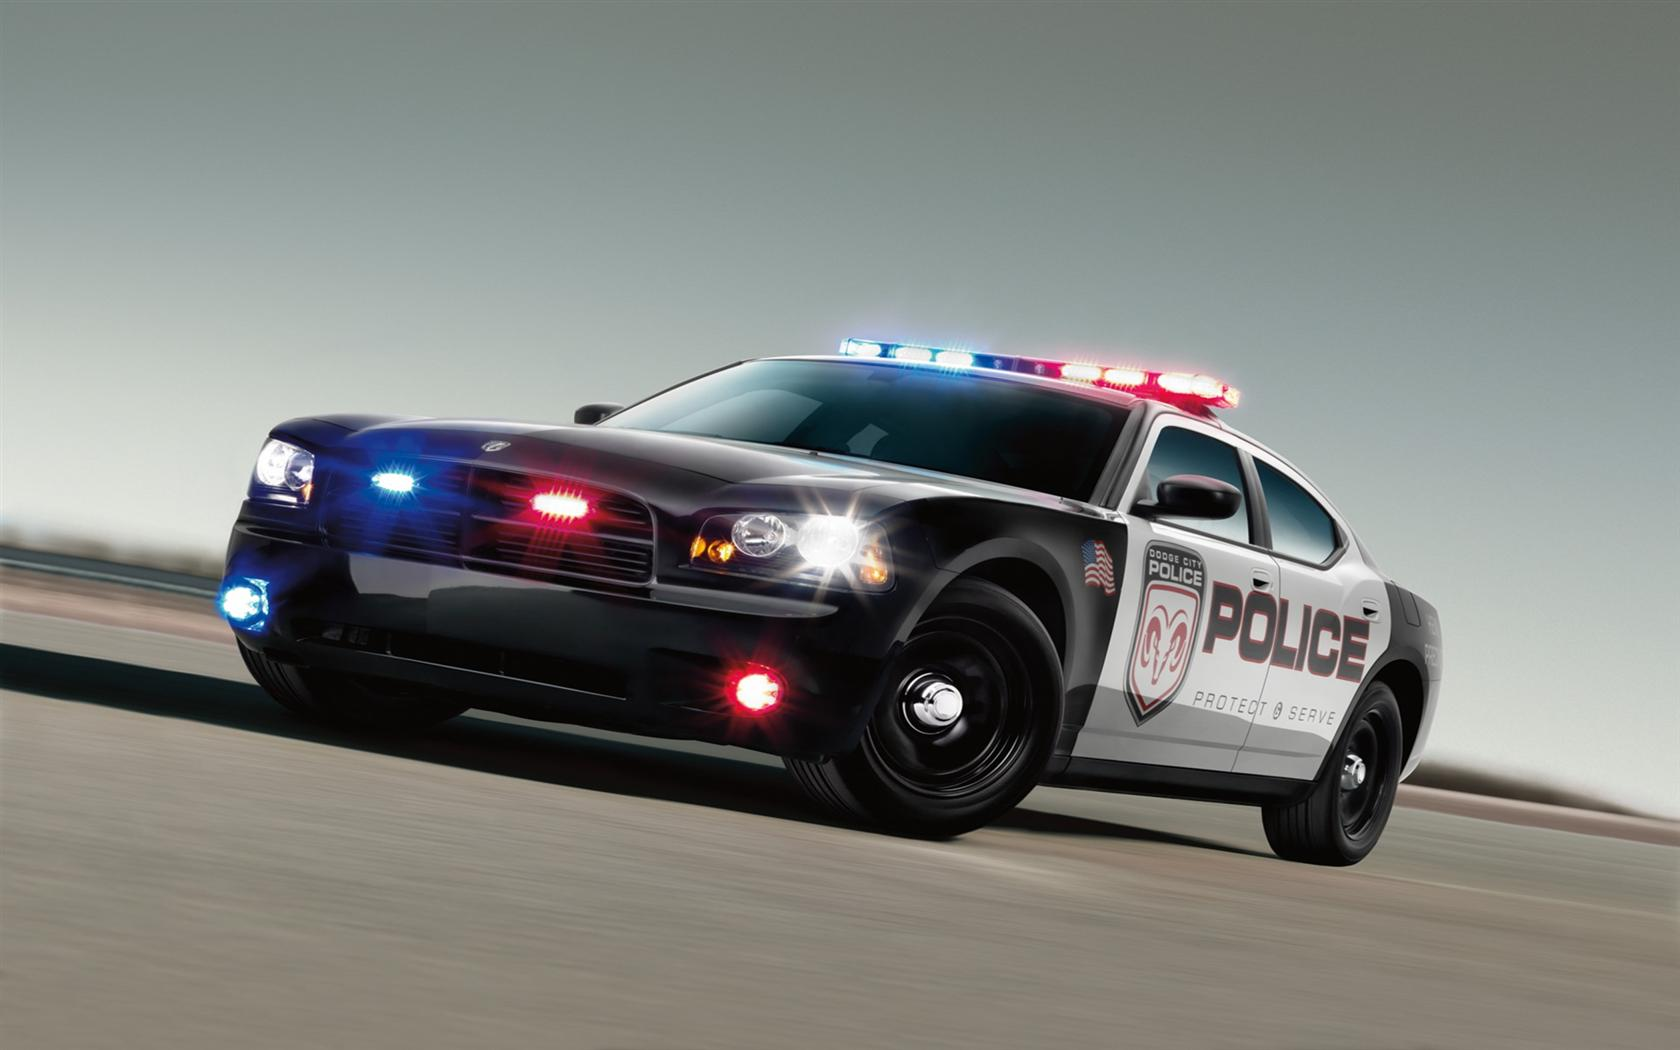 Police Car Wallpapers 1680x1050